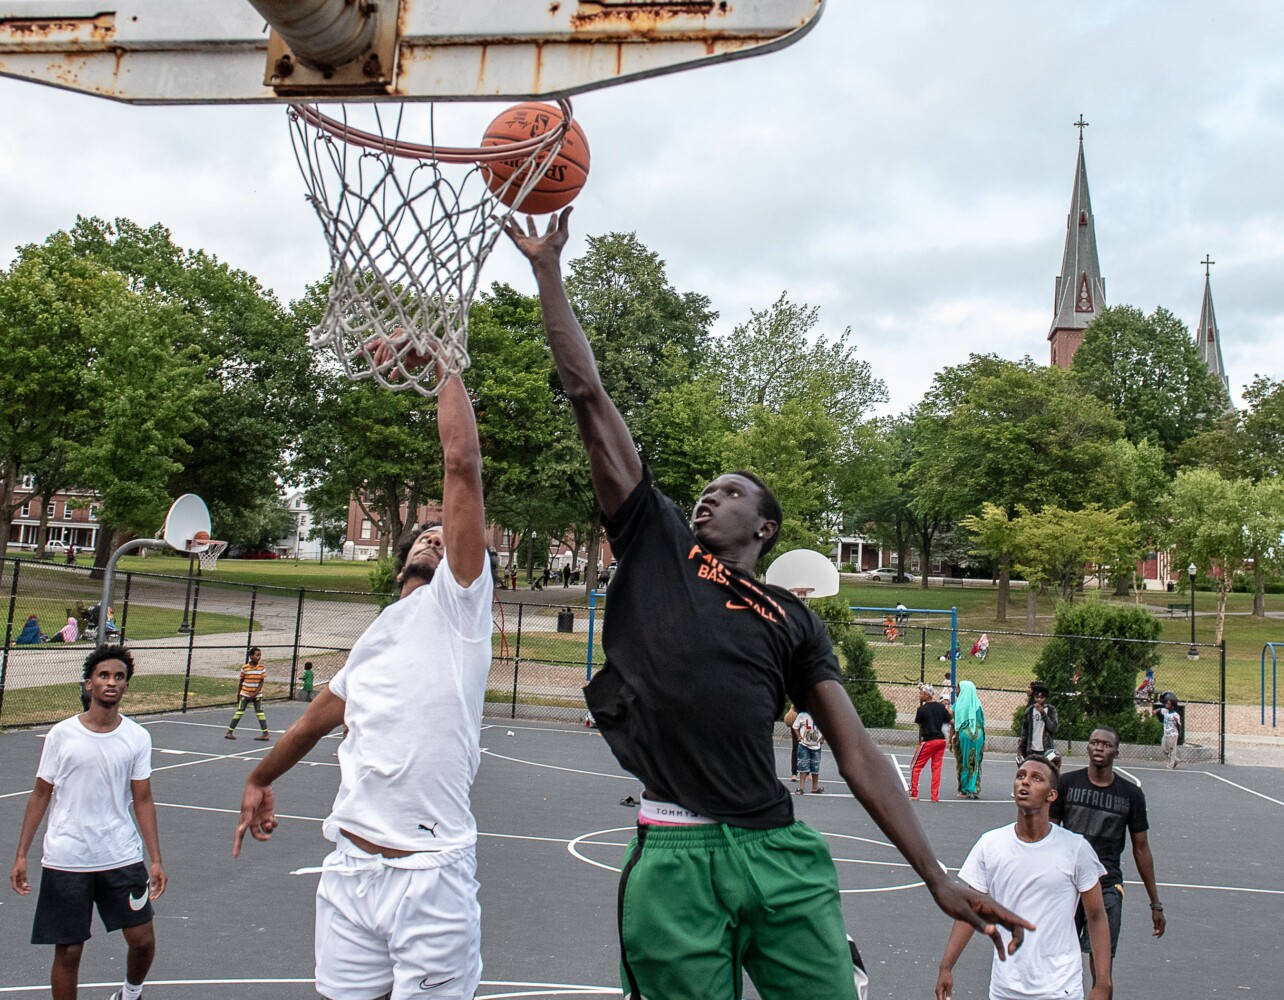 For many, The Gully and Kennedy Park are outlets and basketball